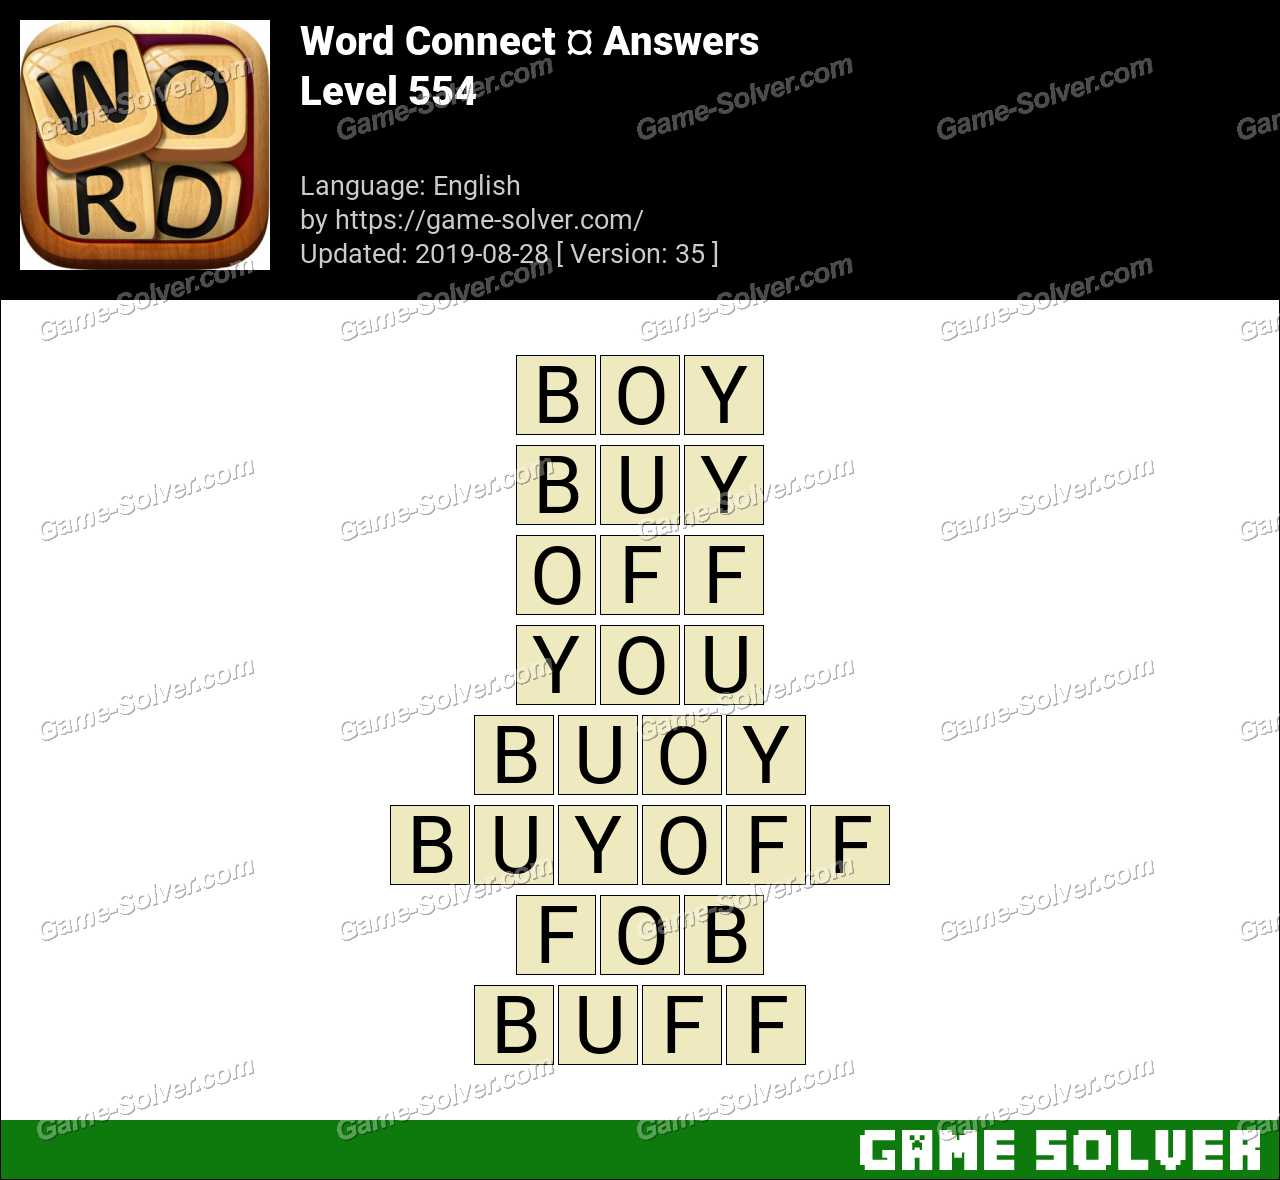 Word Connect Level 554 Answers